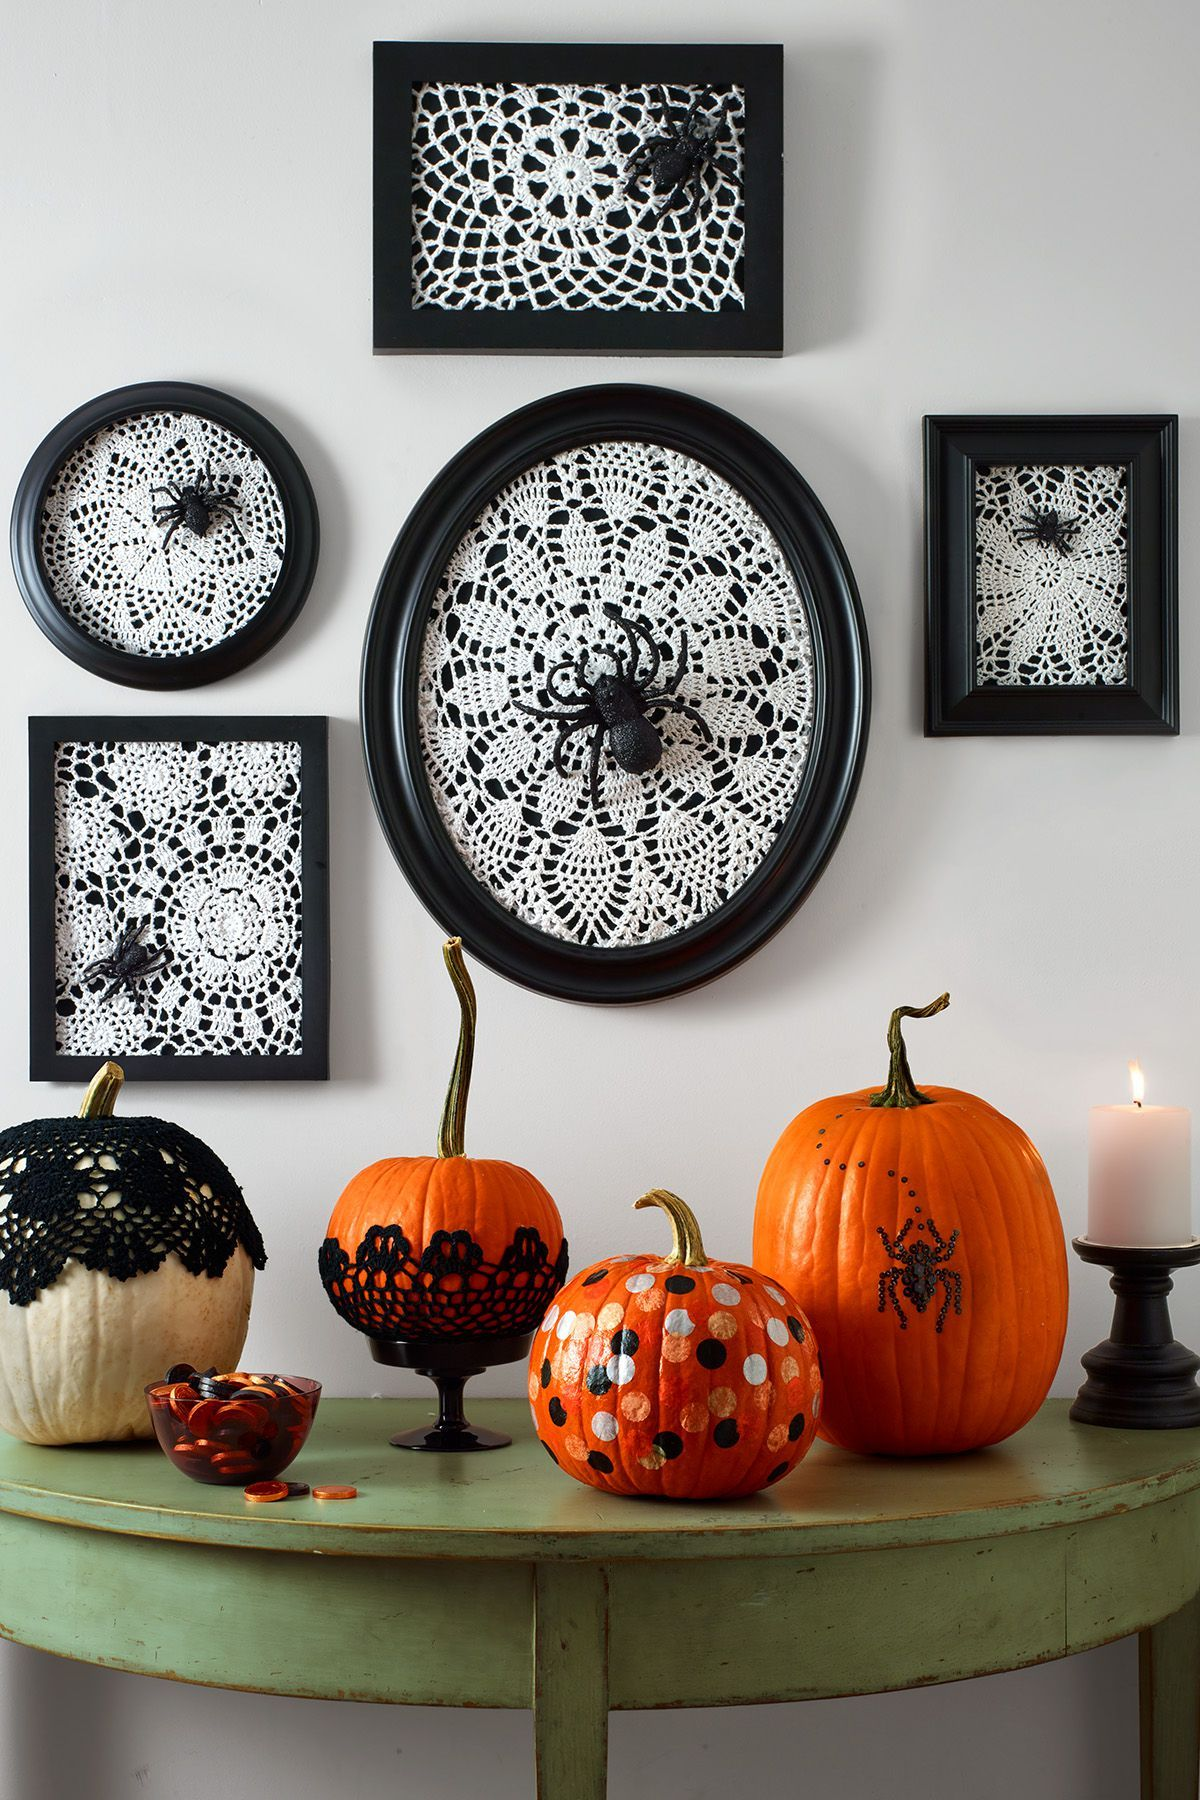 Throw an Epic Halloween Party With These 46 Food and Decor Ideas #cheapdiyhalloweendecorations